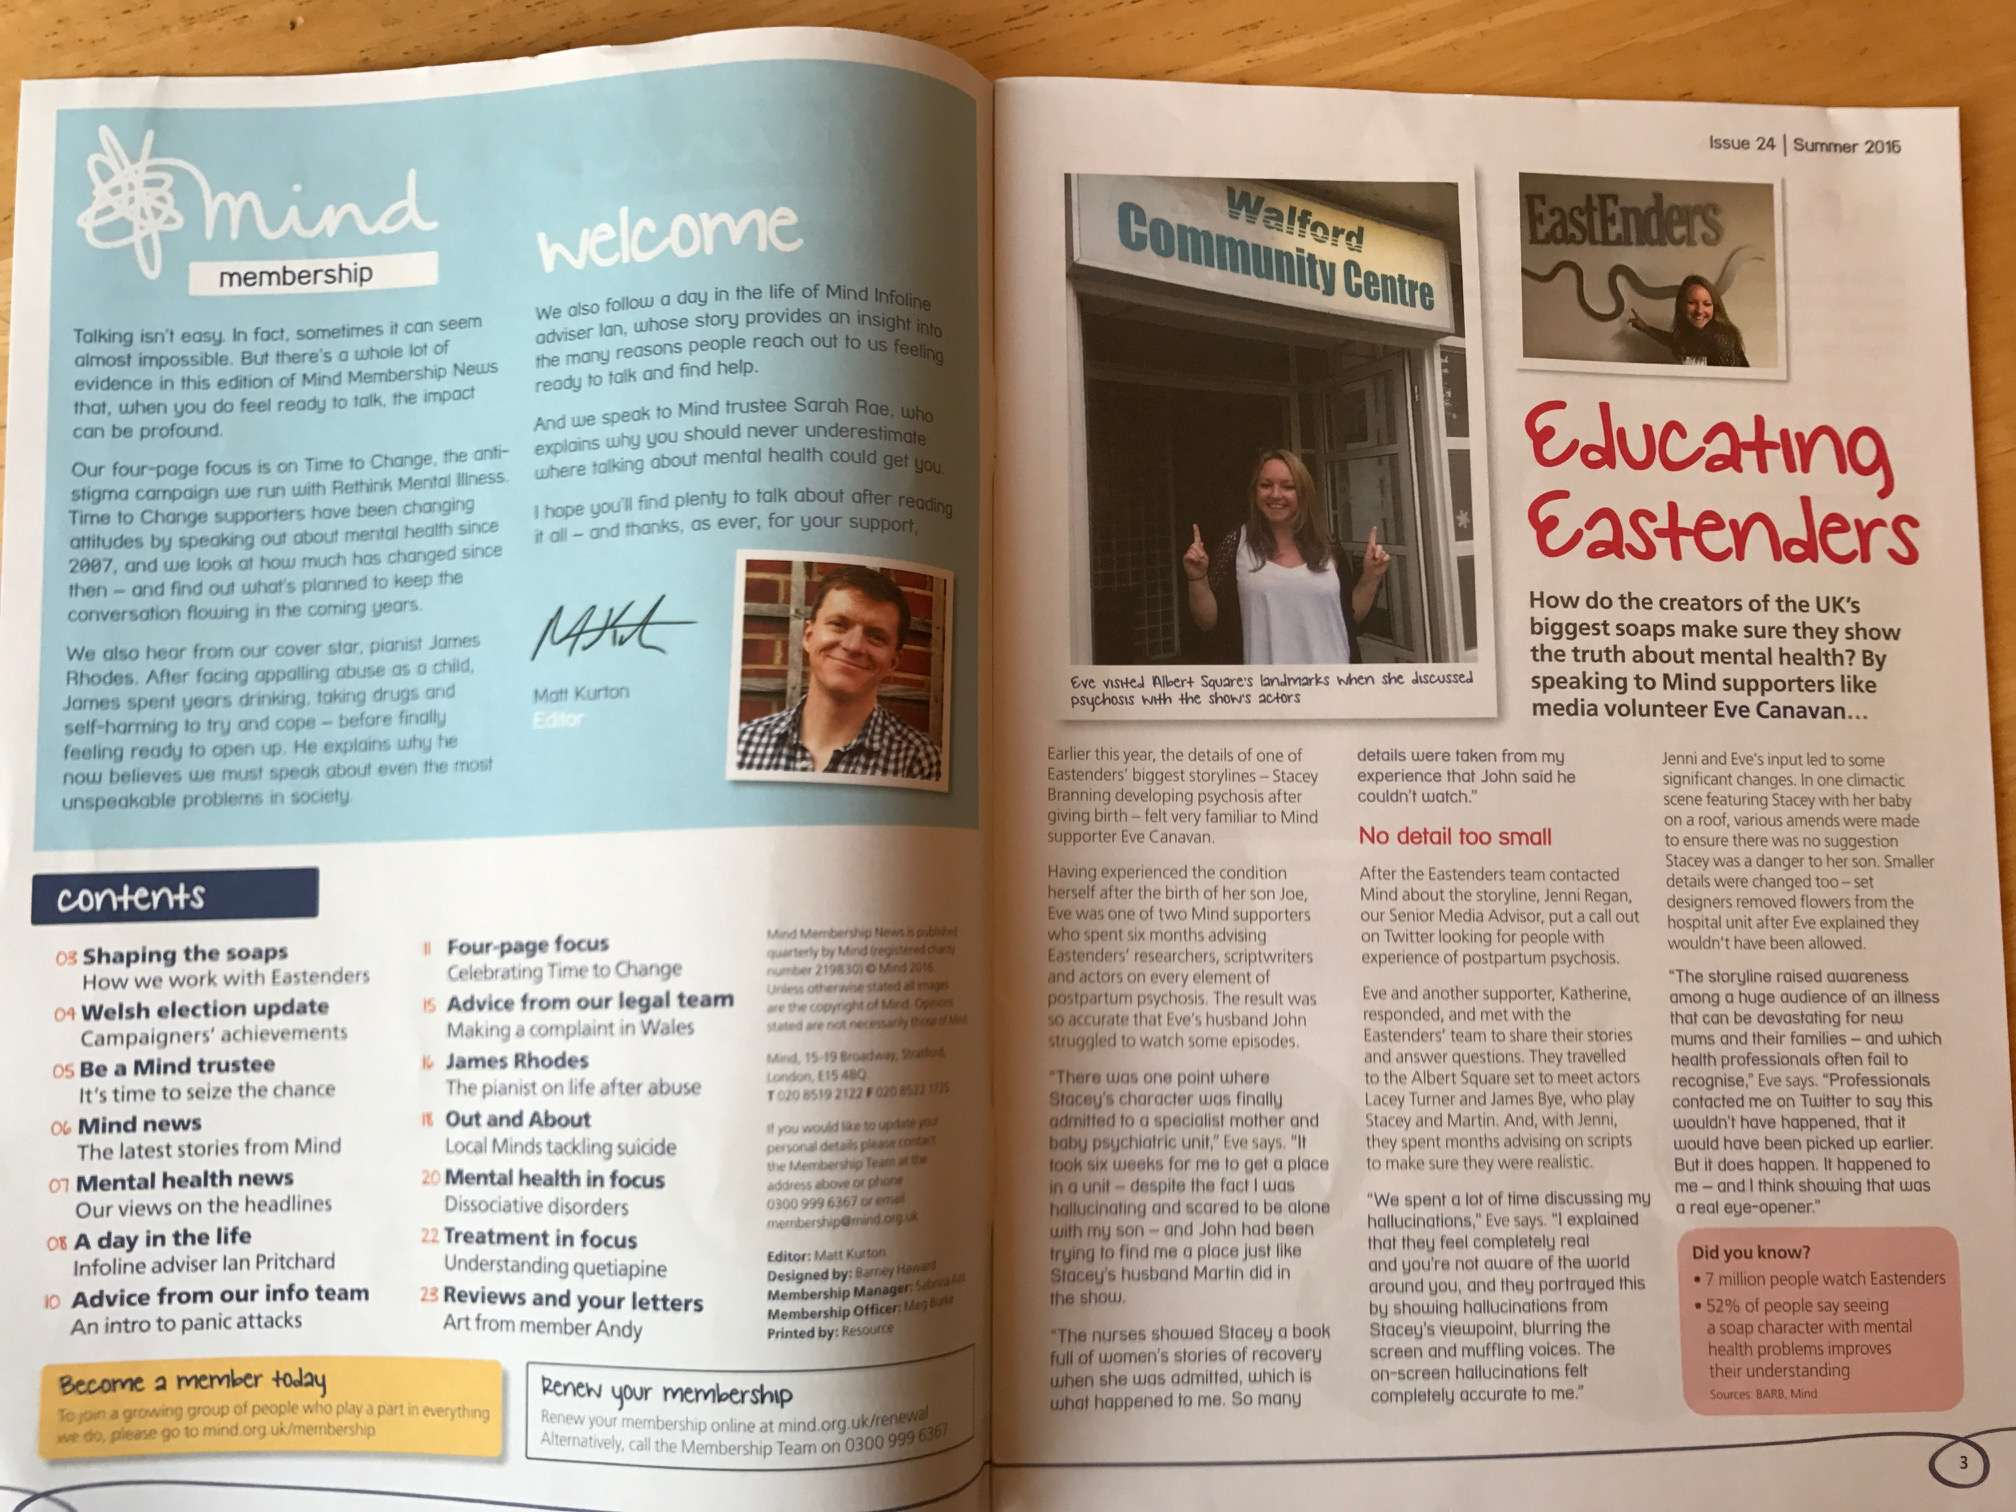 An editorial and a piece about Eastenders' writers consulting Mind supporters.